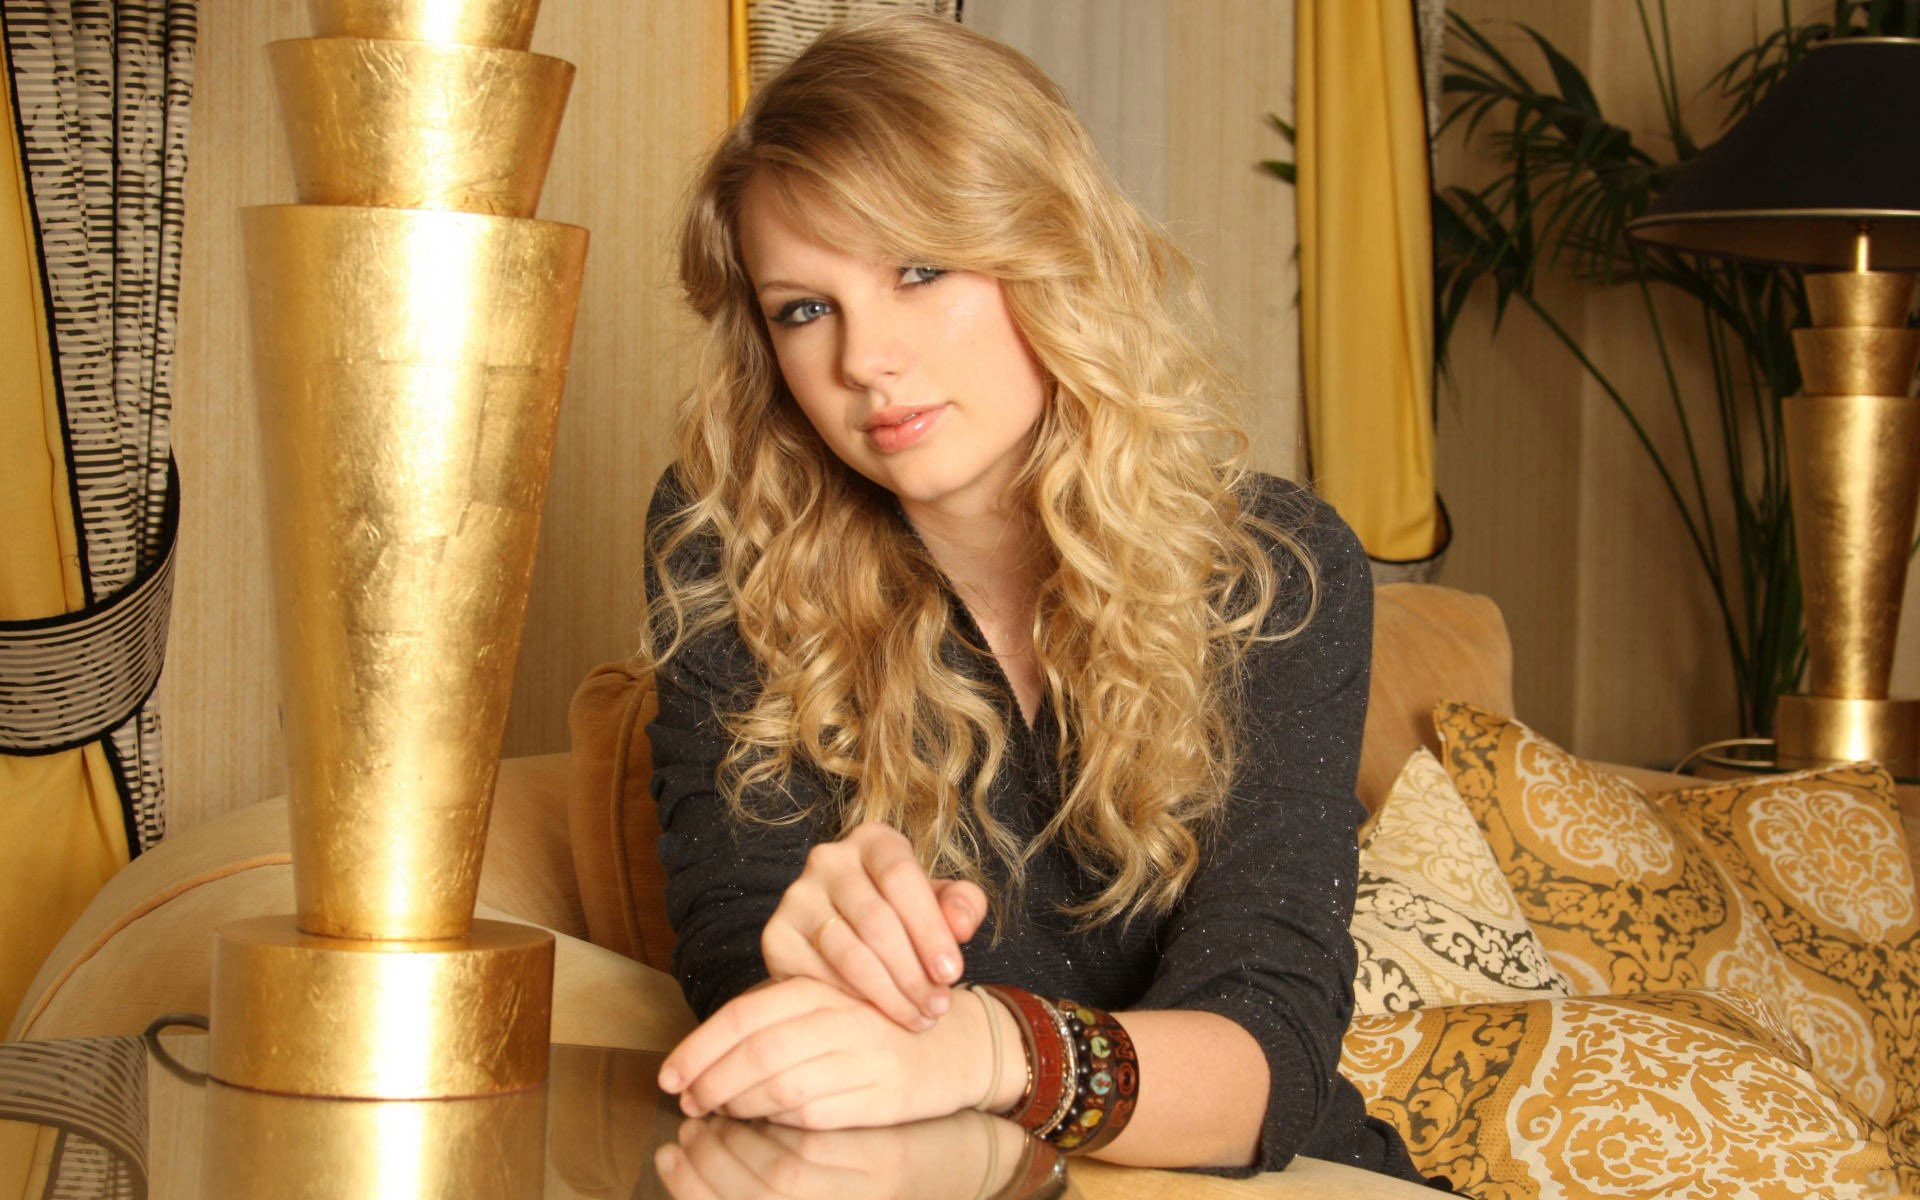 lovely taylor swift desktop free hd background mobile amazing pose